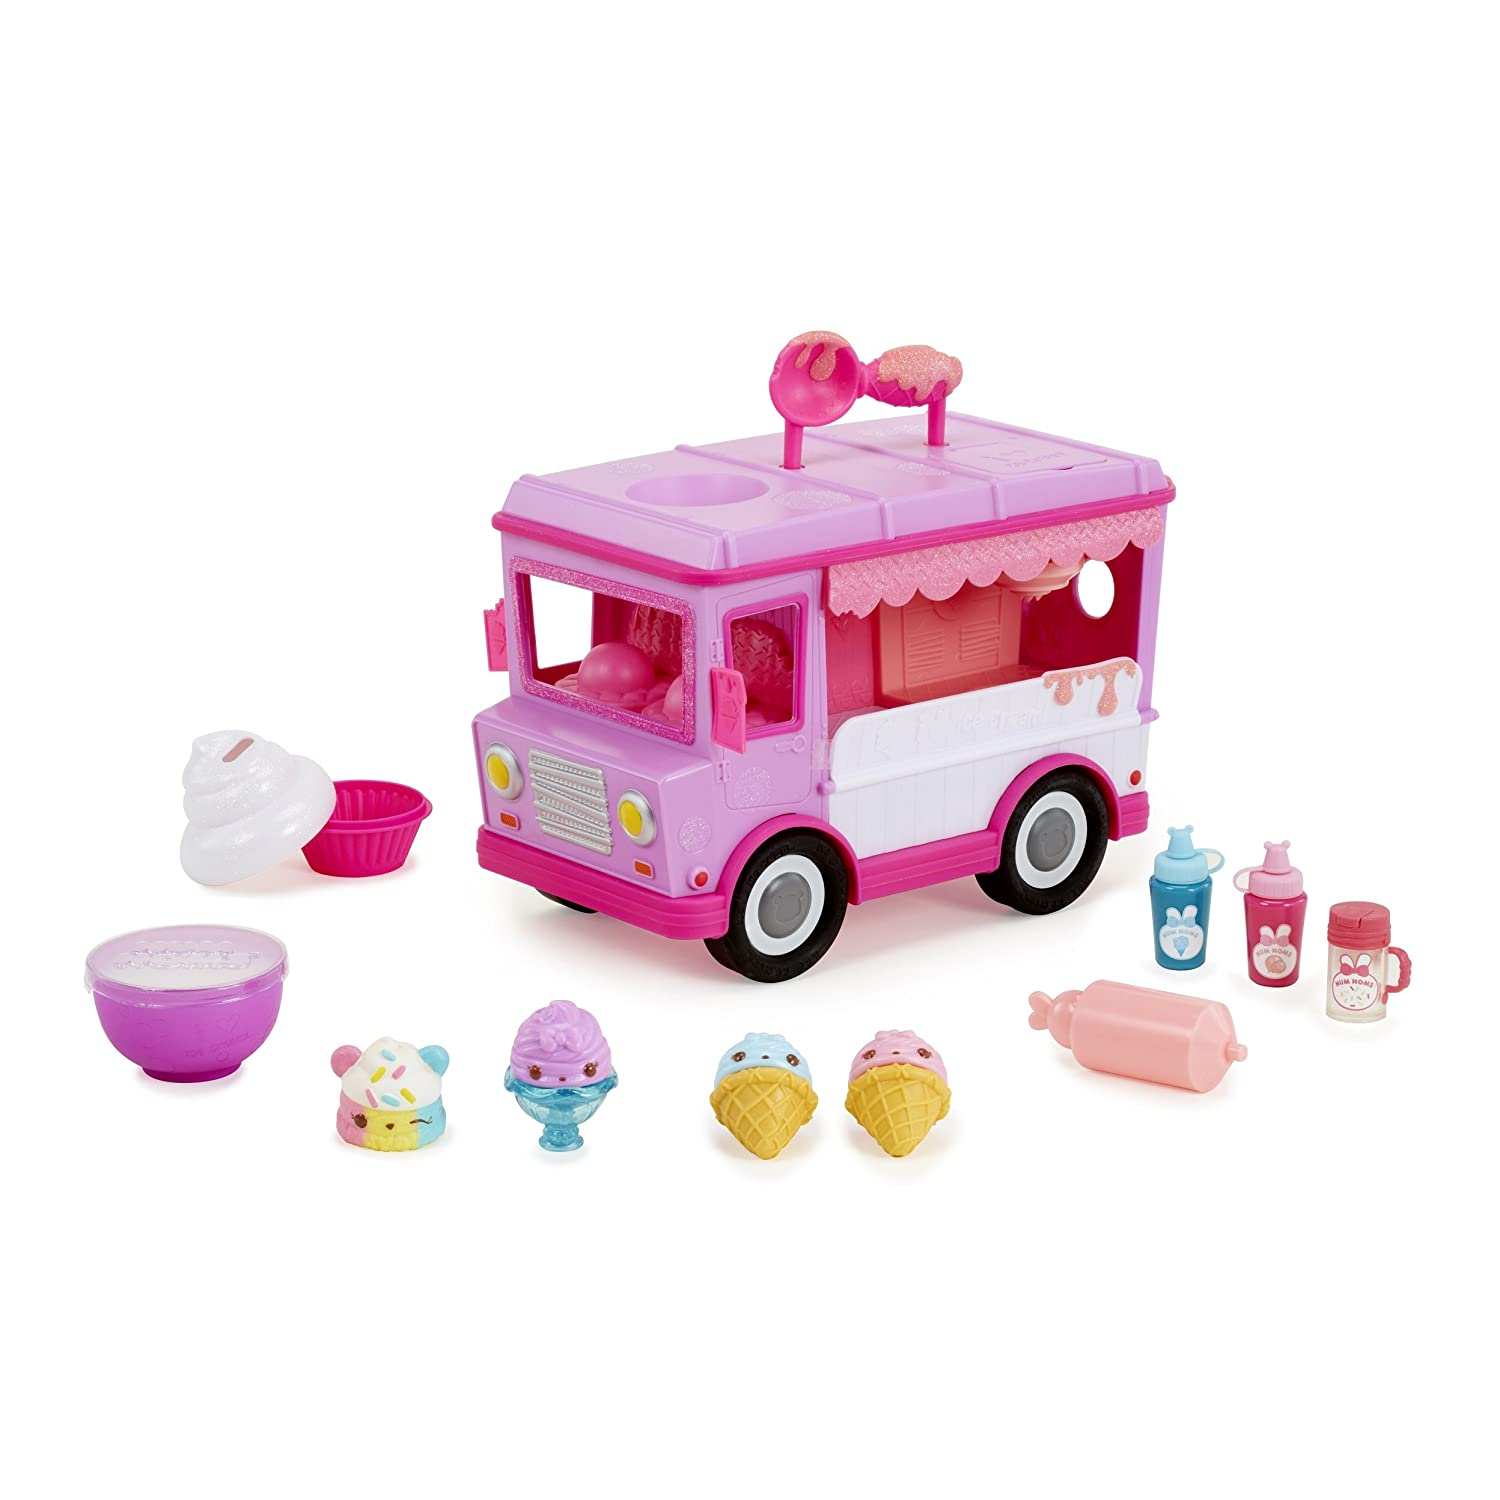 Num Noms Glitter Lip Gloss Truck Small Collectable Toy MGA Entertainment 551621